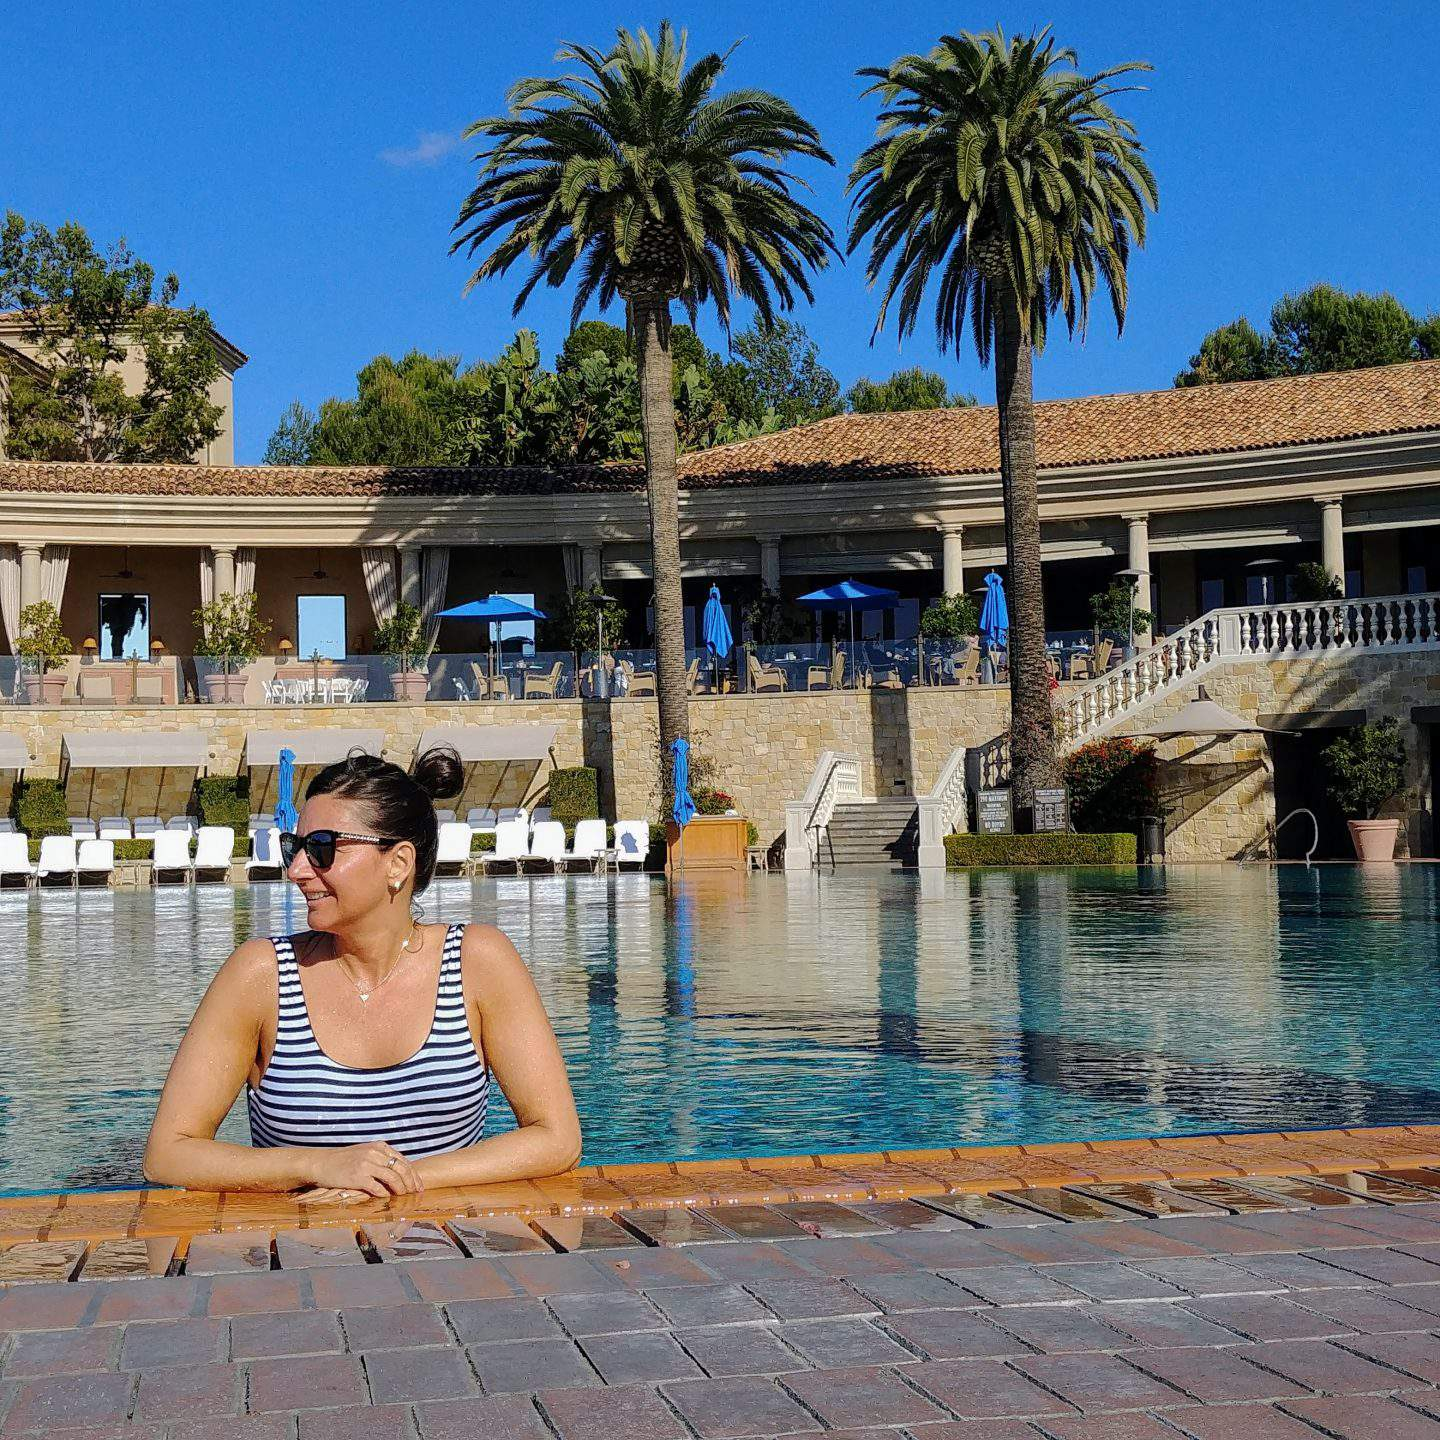 Checking in The Resort At Pelican Hill, Newport Beach